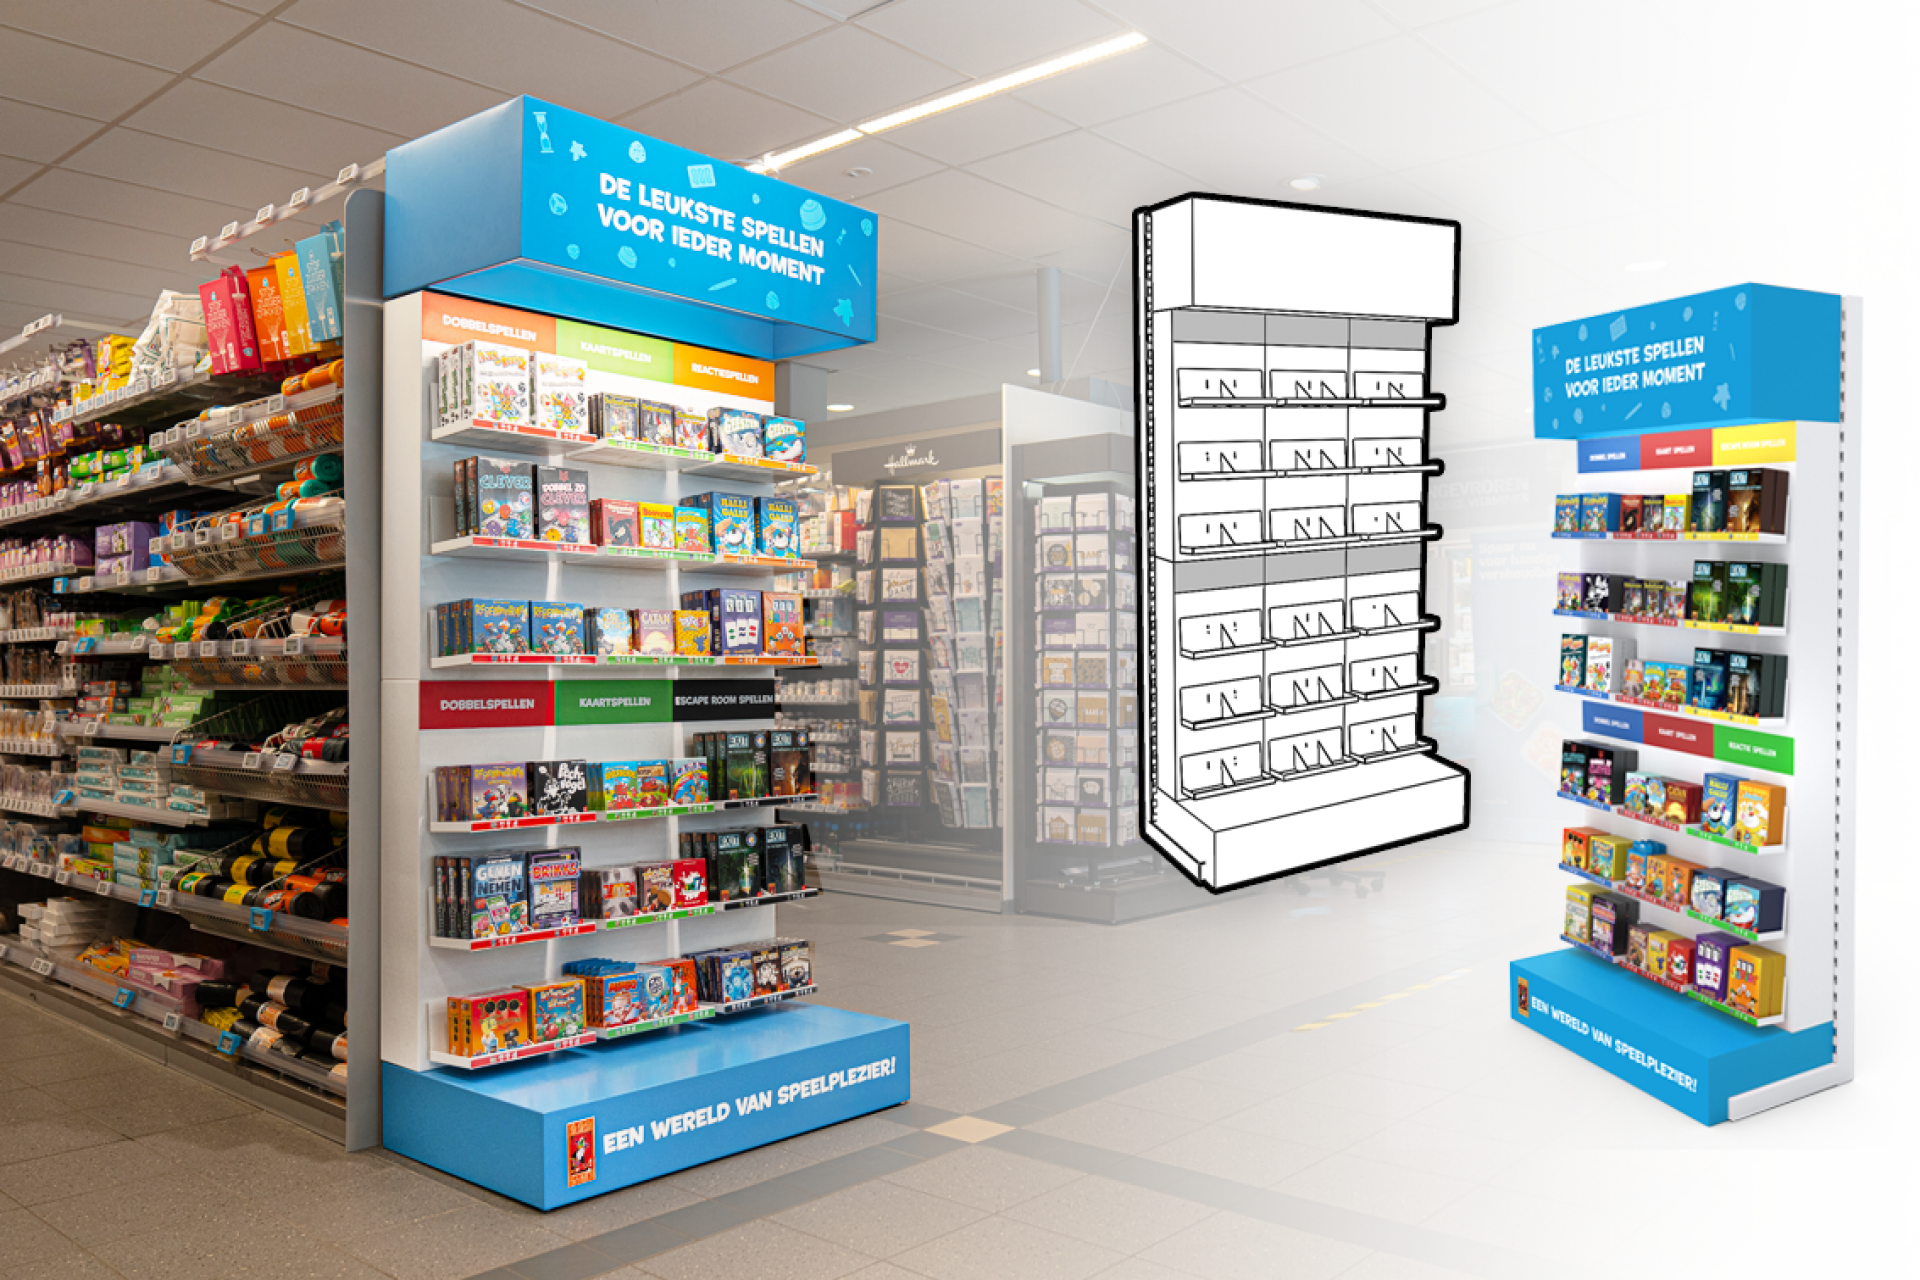 999 GAMES - Game Point of Sale